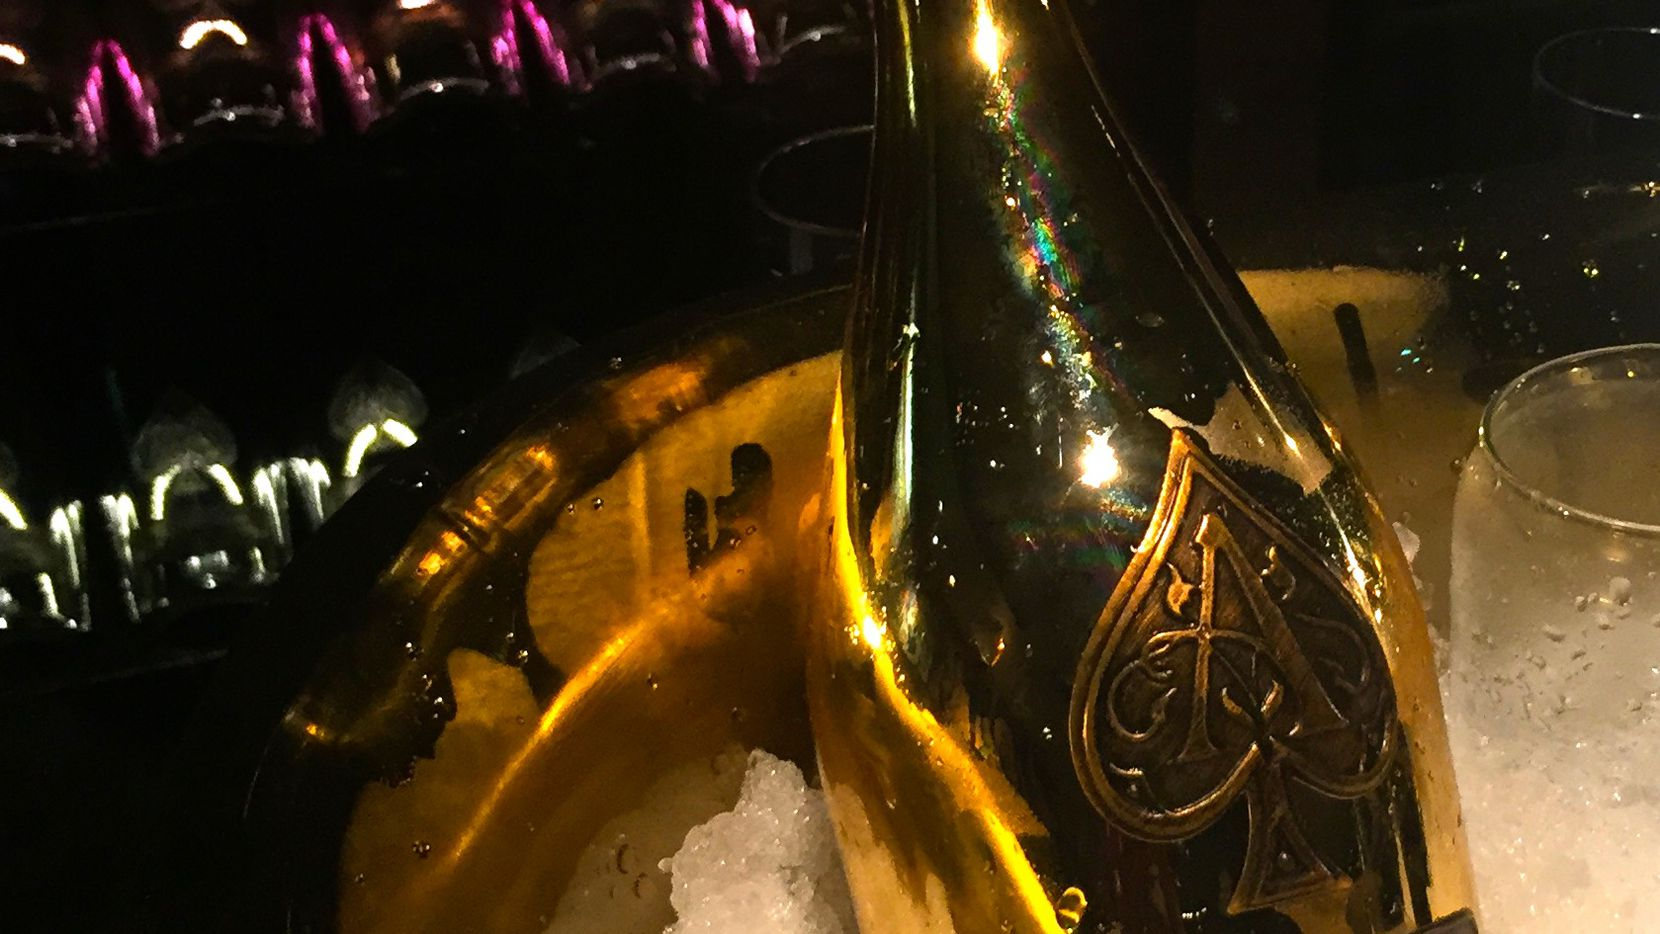 A single glass of Ace of Spades' Brut Champagne will cost $150 at Nick & Sam's Steakhouse. Hope you brought the company card.